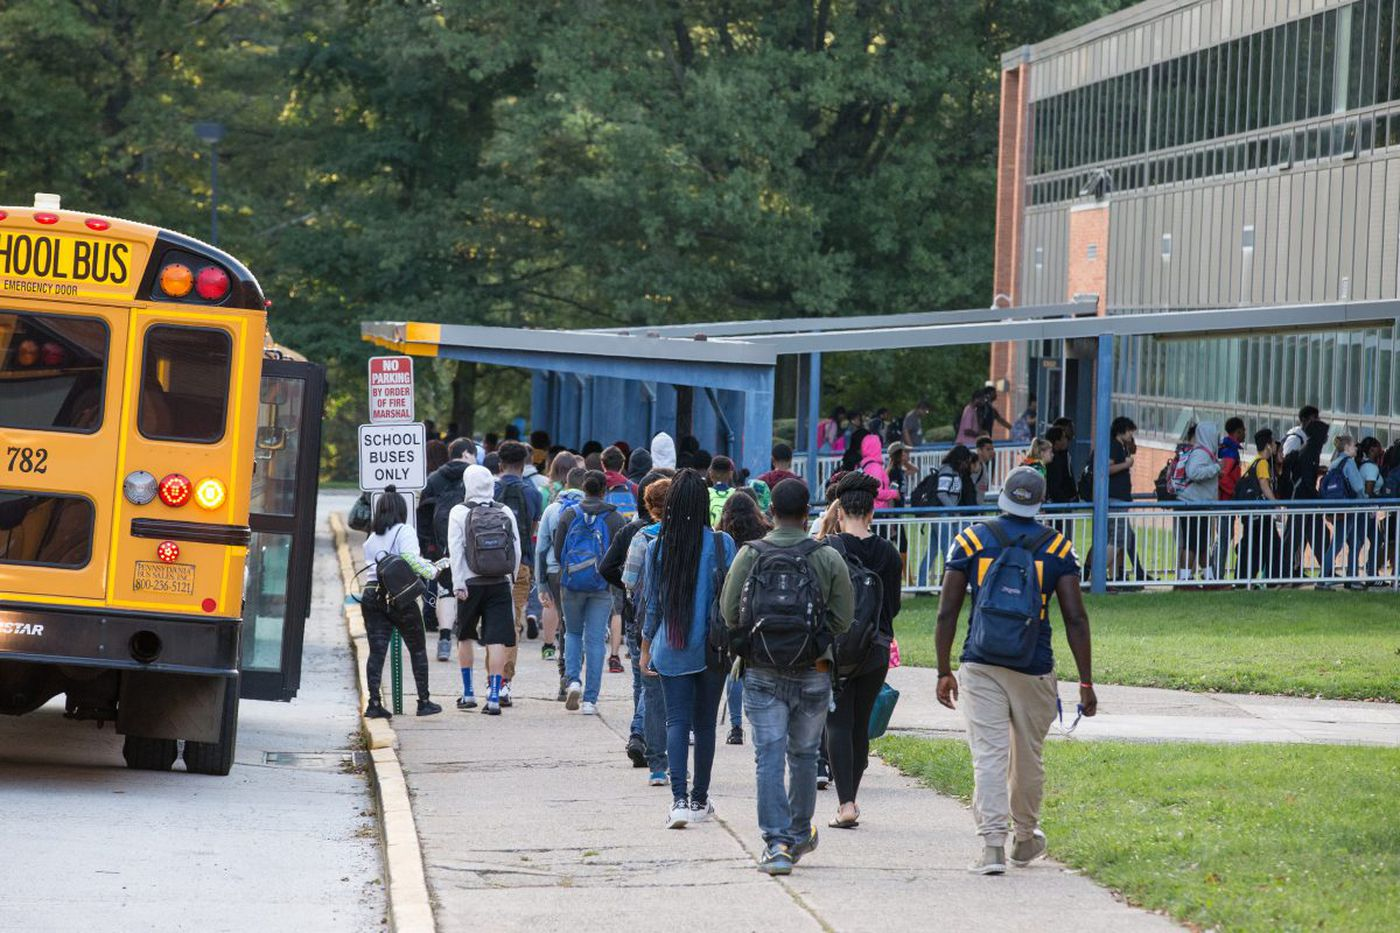 School racial incidents in Coatesville, Washington Twp. and Quakertown: A recap